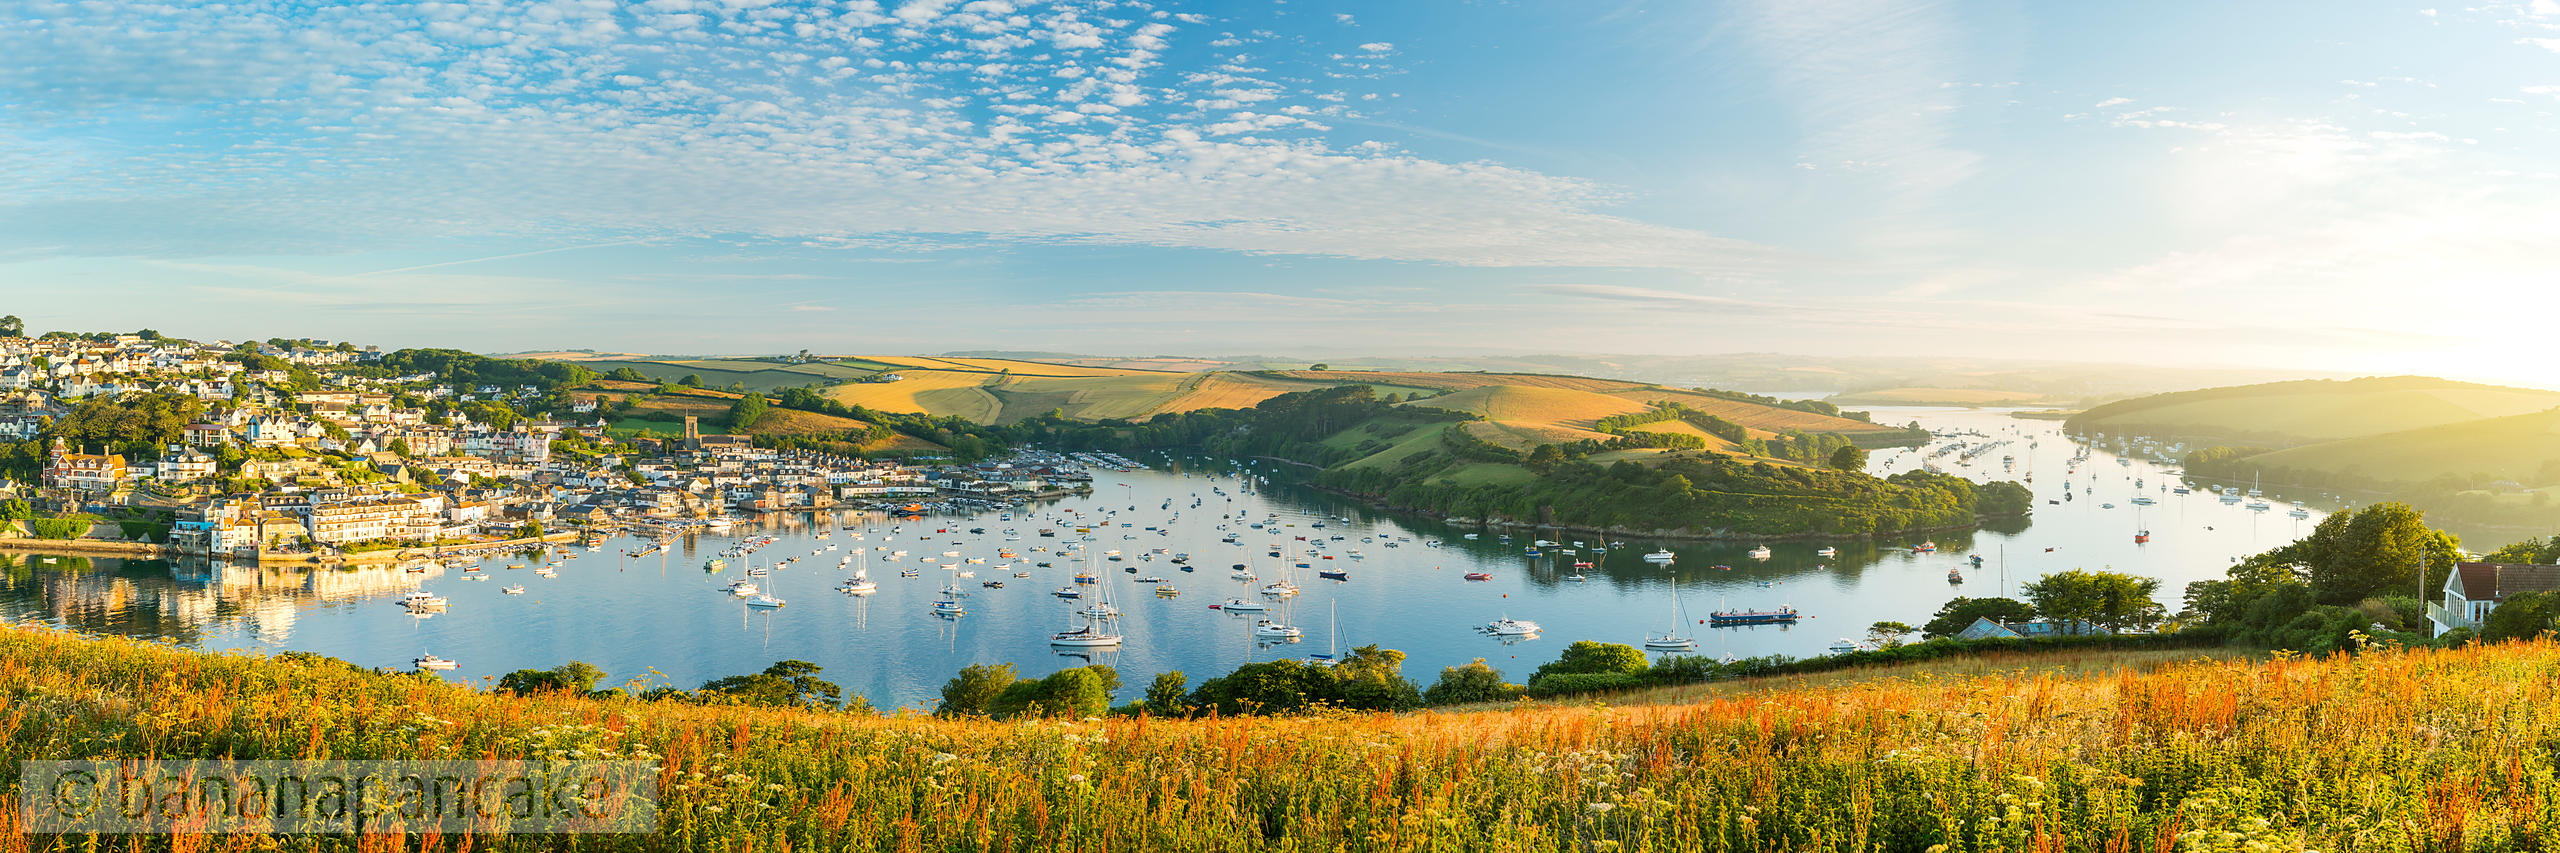 BP6300 - Panoramic view of Salcombe and the Kingsbridge Estuary at dawn